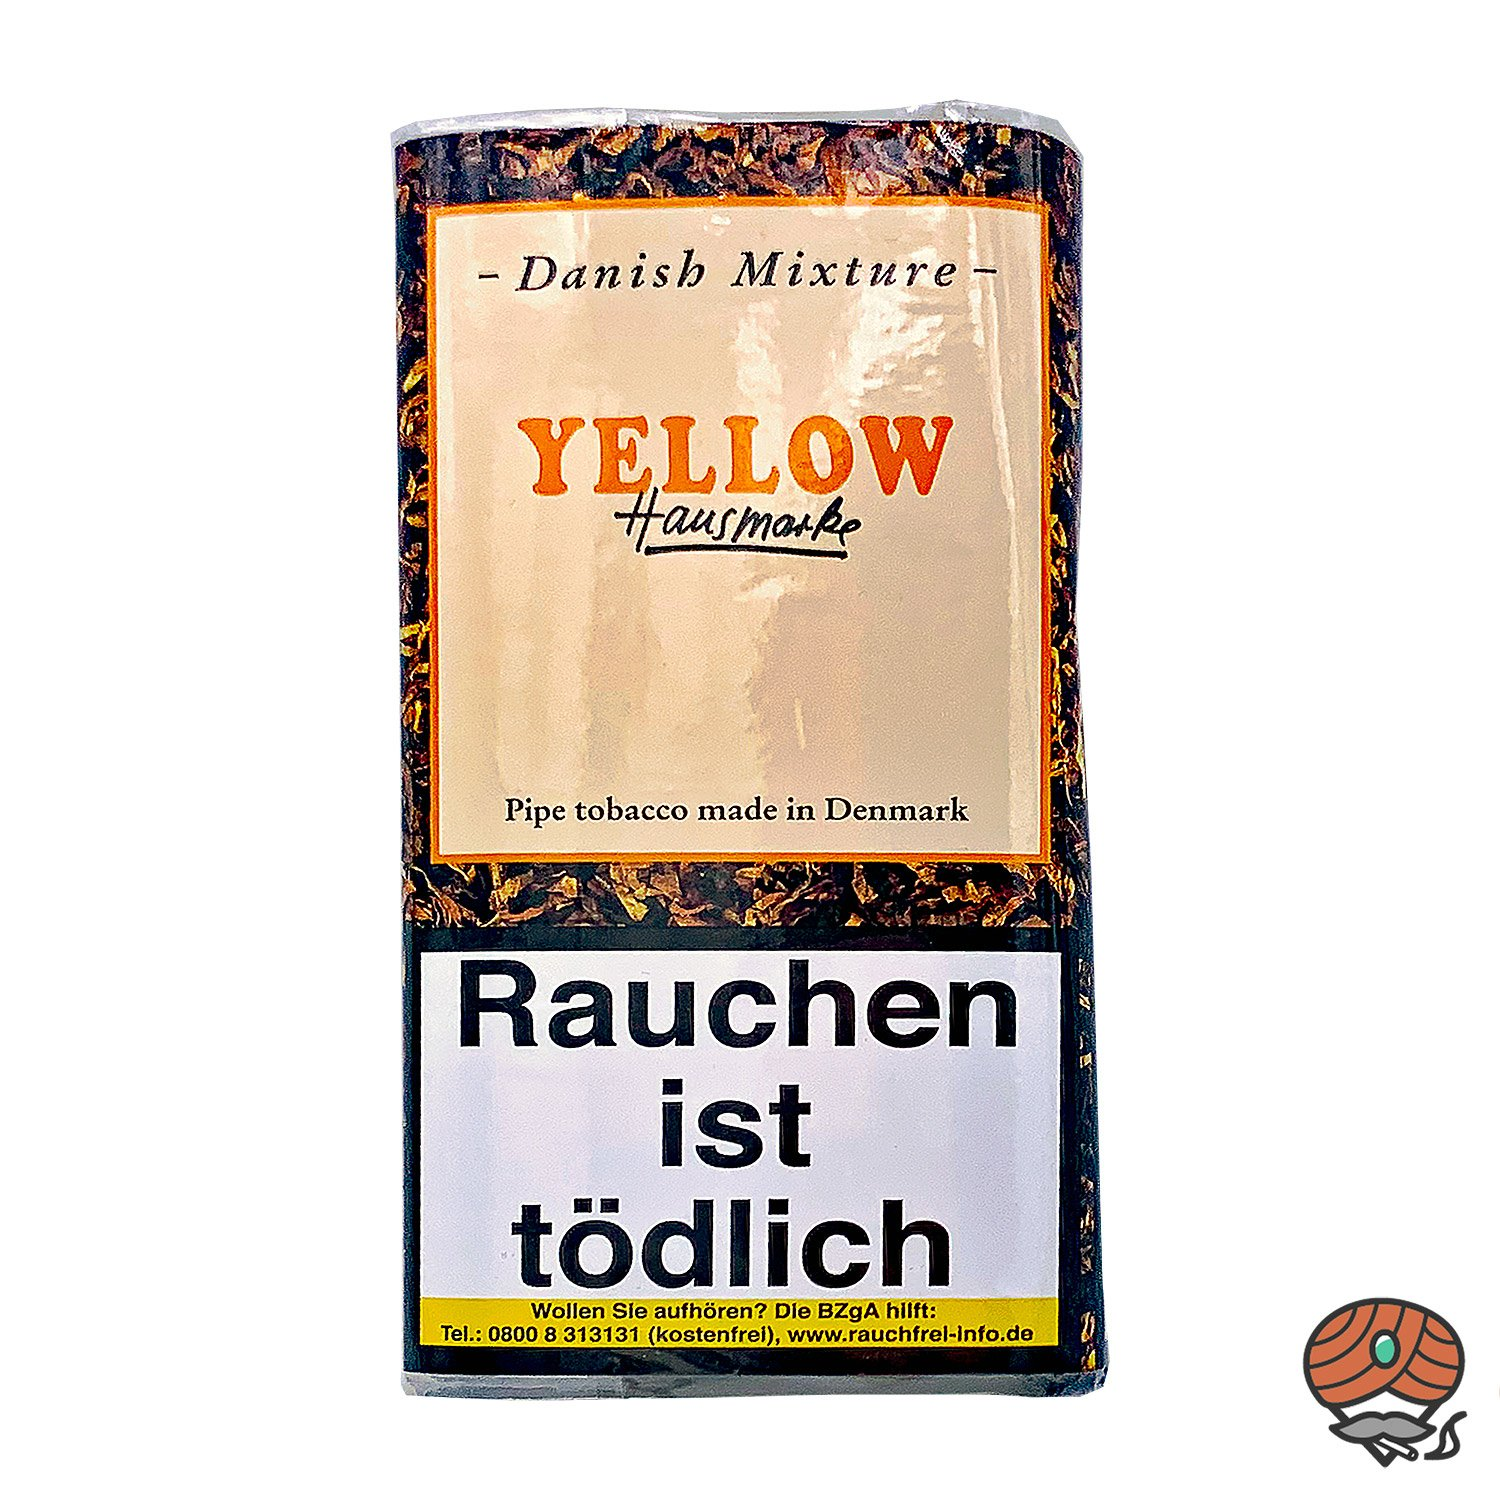 Danish Mixture Hausmarke Yellow Pfeifentabak 50g Pouch